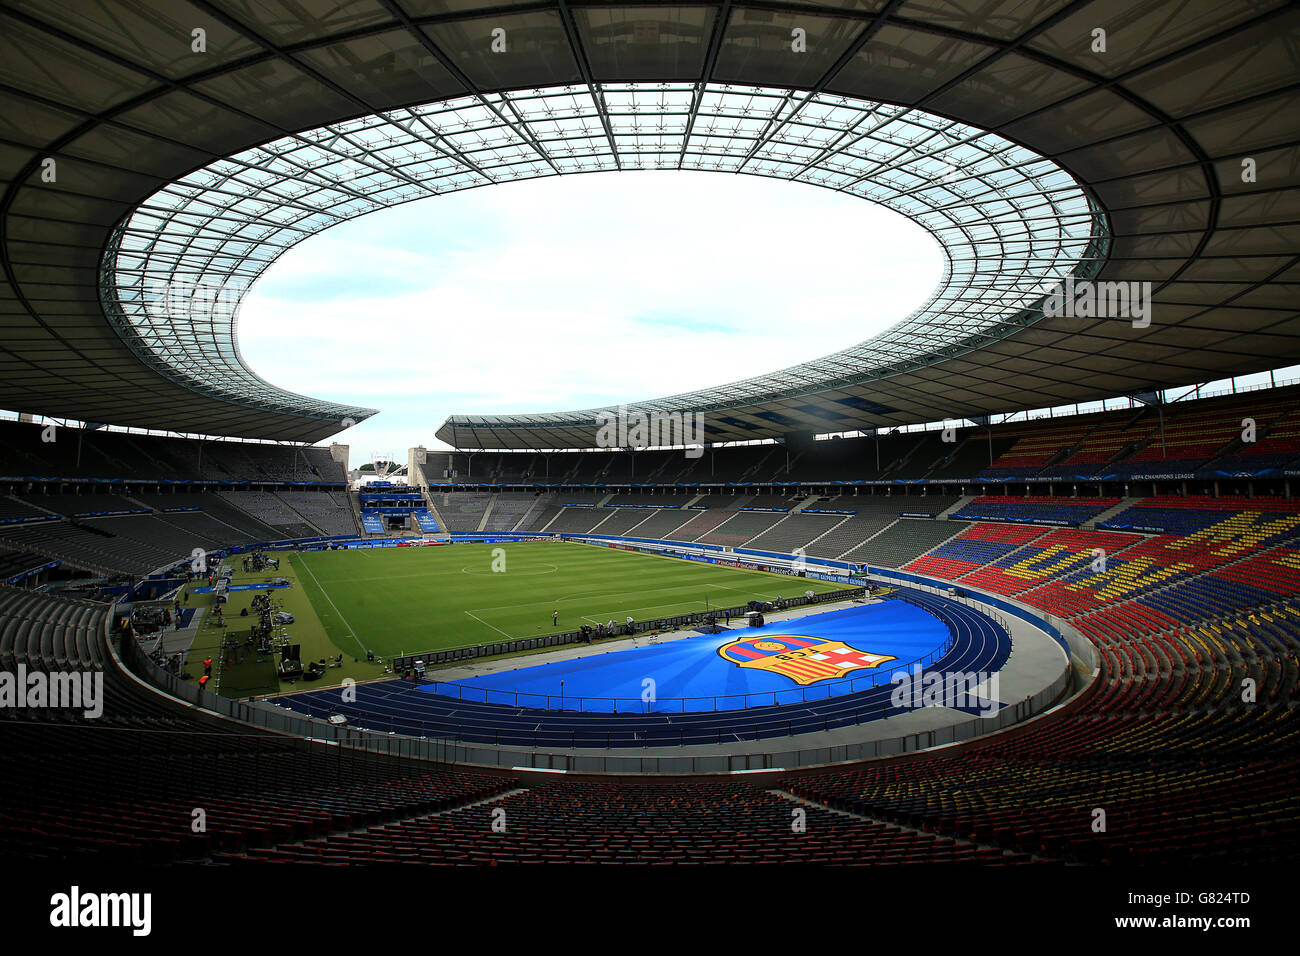 Soccer Uefa Champions League Final Juventus V Barcelona Stock Photo Alamy